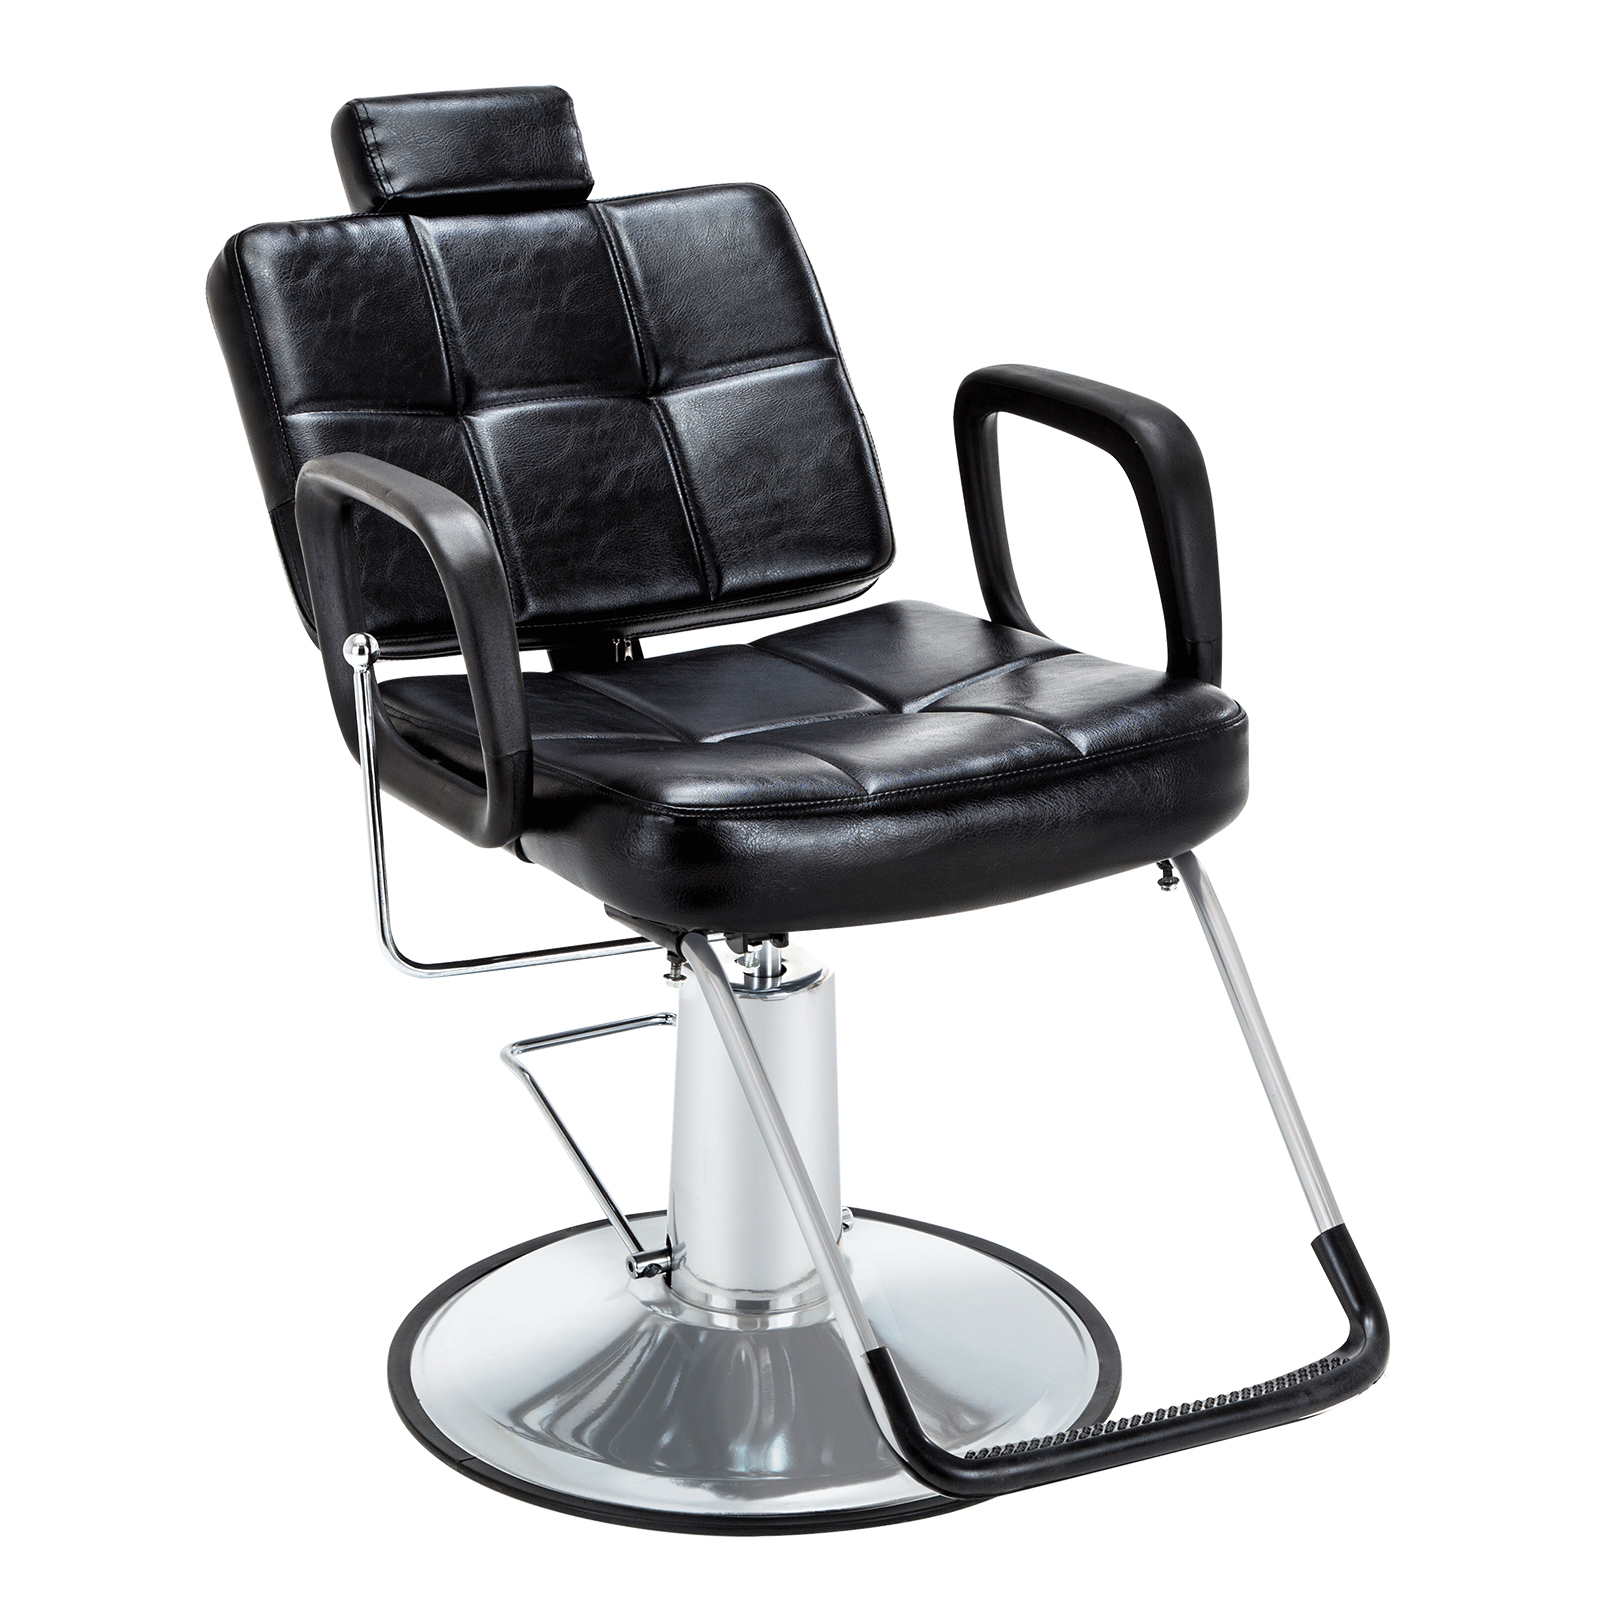 Groovy Details About 3600Swivel Barber Chair Hydraulic Pump Footrest Cover Recliners Salon Equipment Bralicious Painted Fabric Chair Ideas Braliciousco